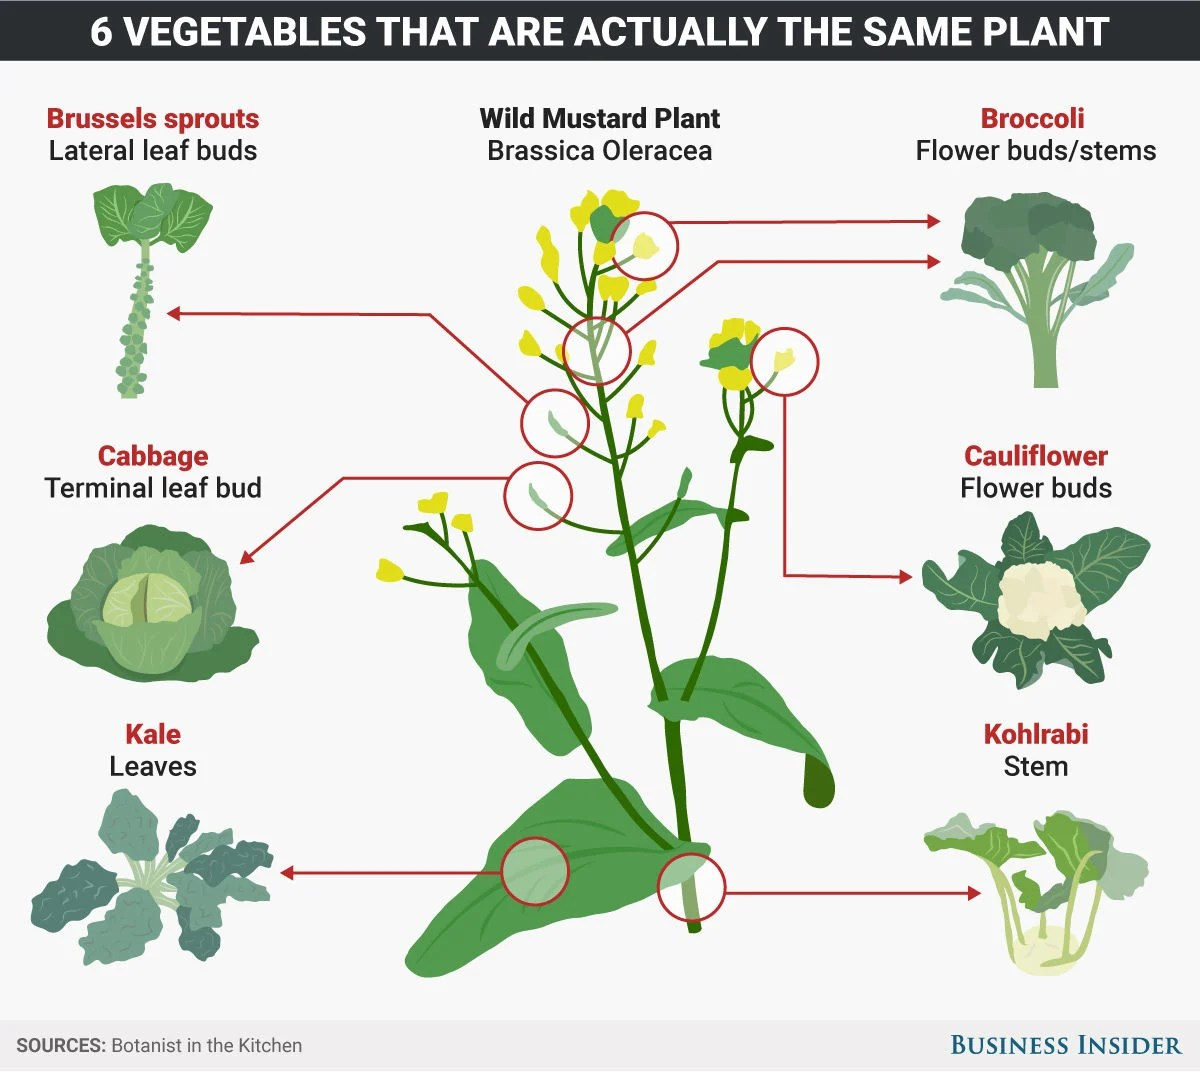 These 6 Common Vegetables Are Actually All The Same Plant